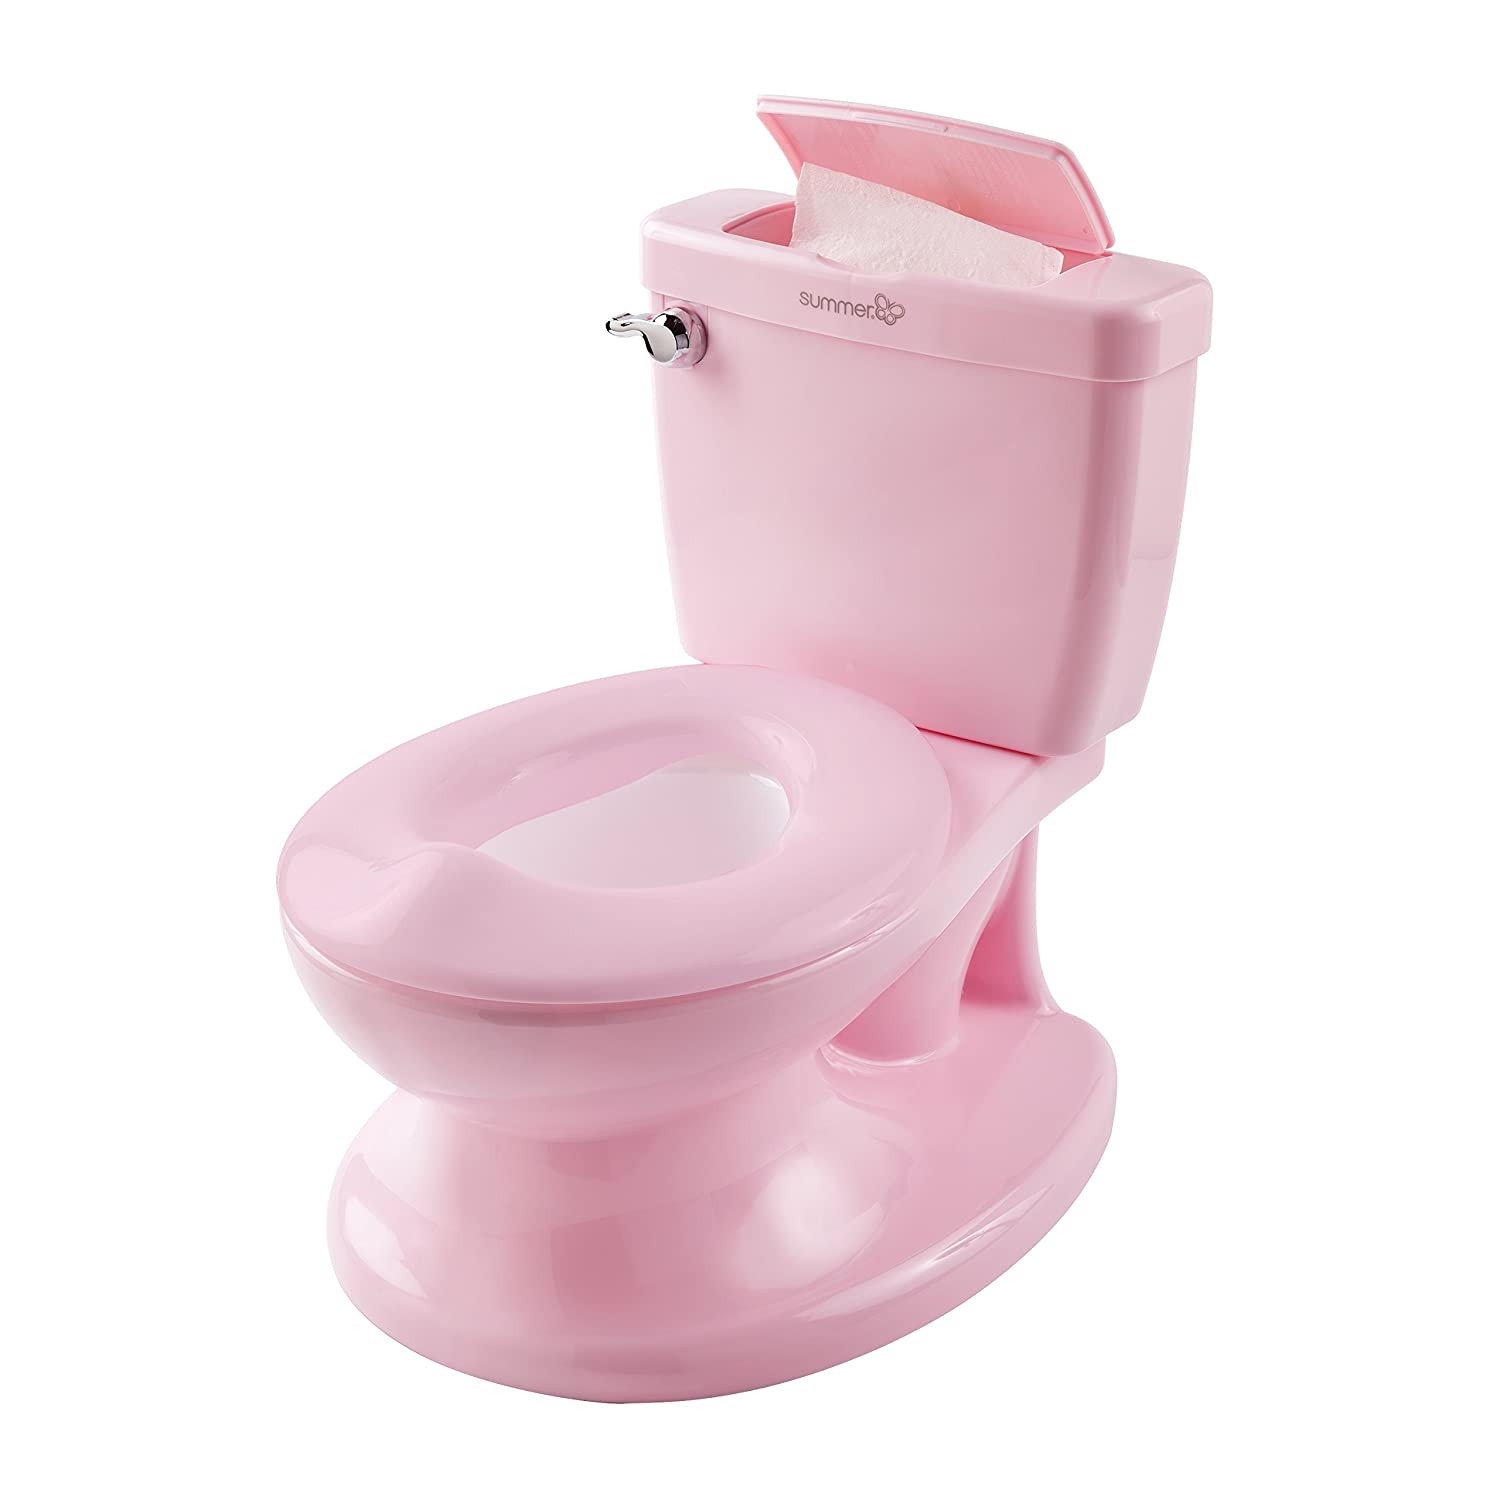 Summer Infant My Size Potty (Pink) - Training Toilet for Toddler Girls - with Flushing Sounds and Wipe Dispenser 11525